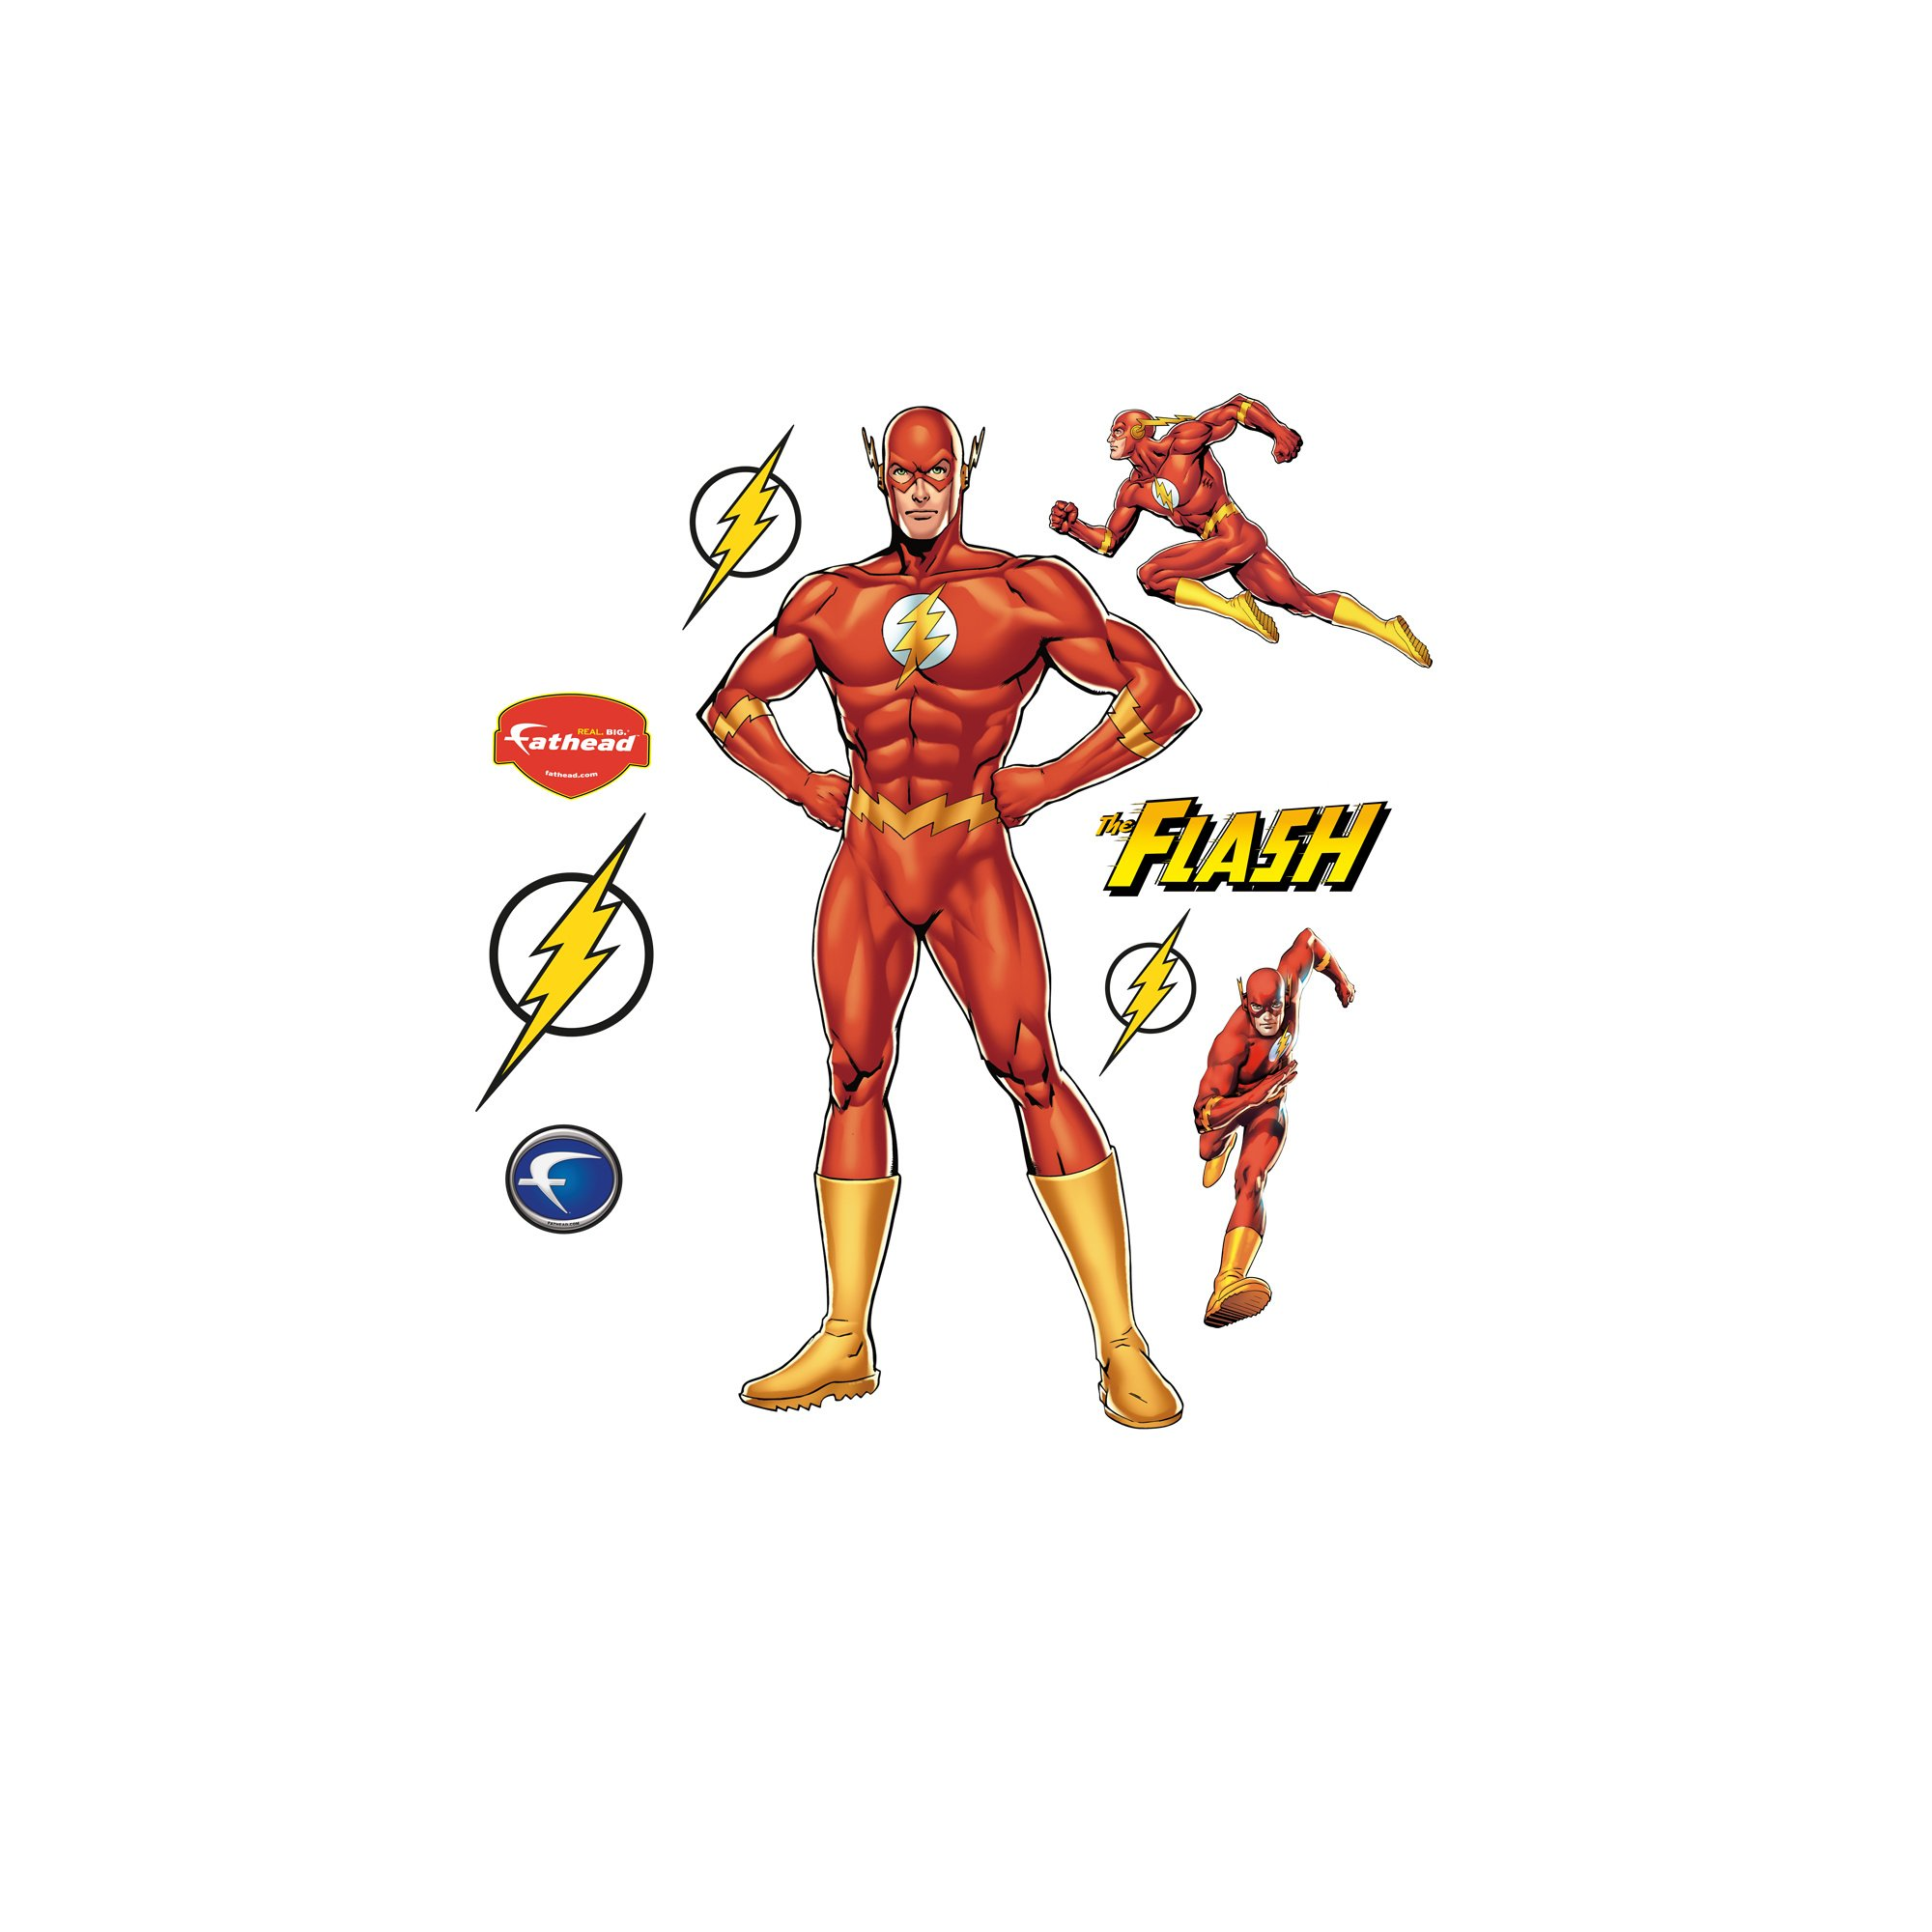 The Flash Wall Graphic by FATHEAD